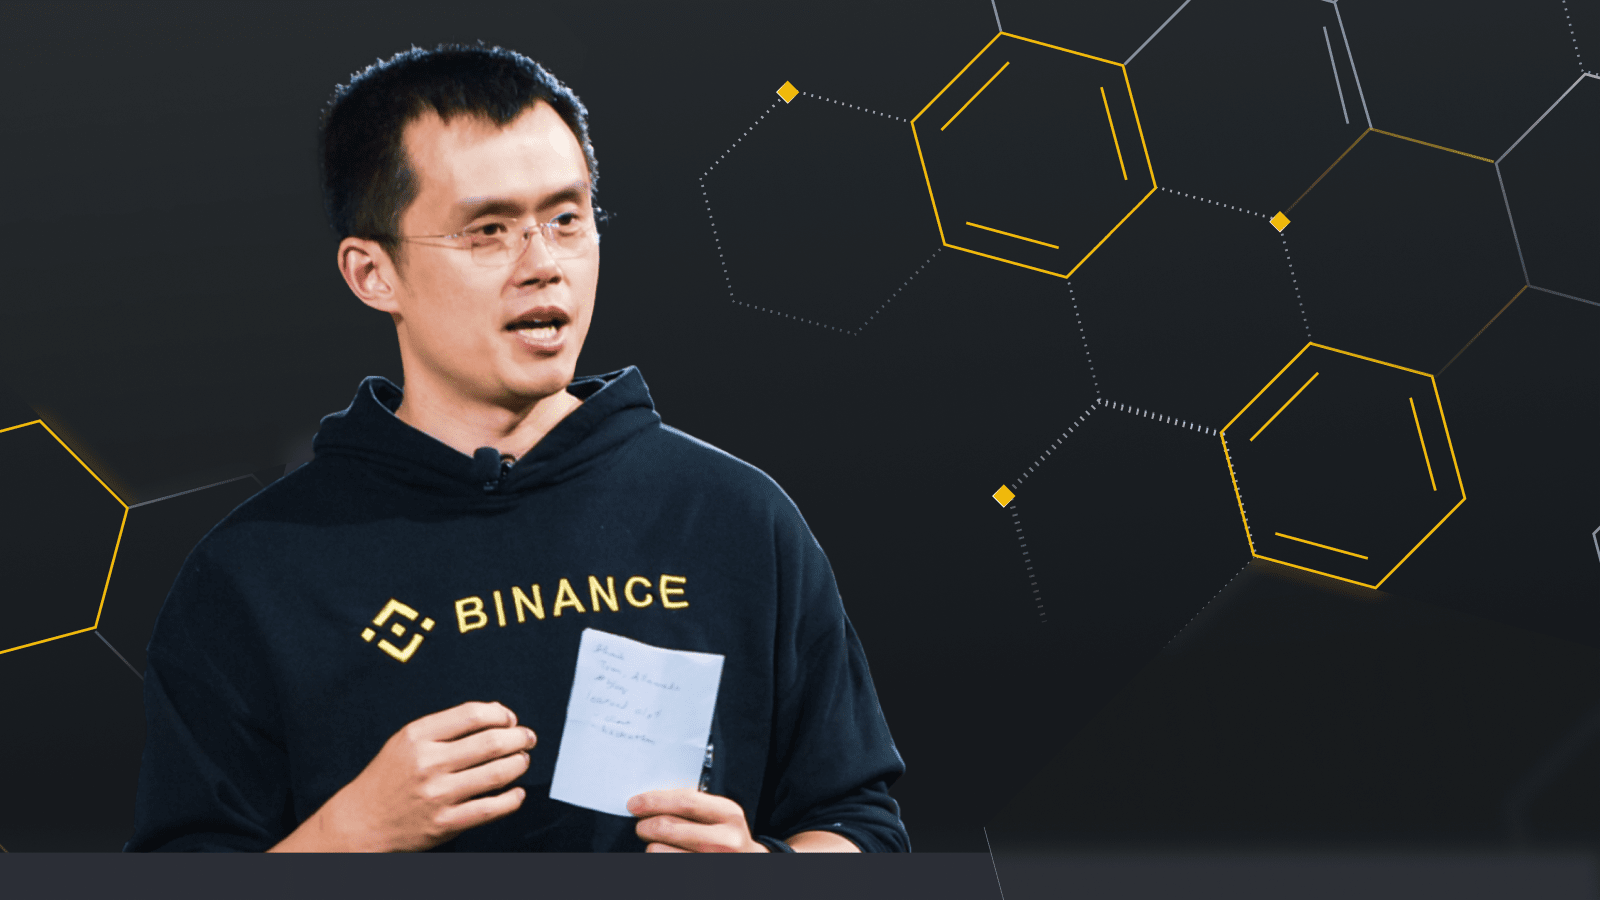 Hear from CZ: Our Approach To User Protection and Proactive Compliance | Binance Blogon October 8, 2021 at 6:39 am